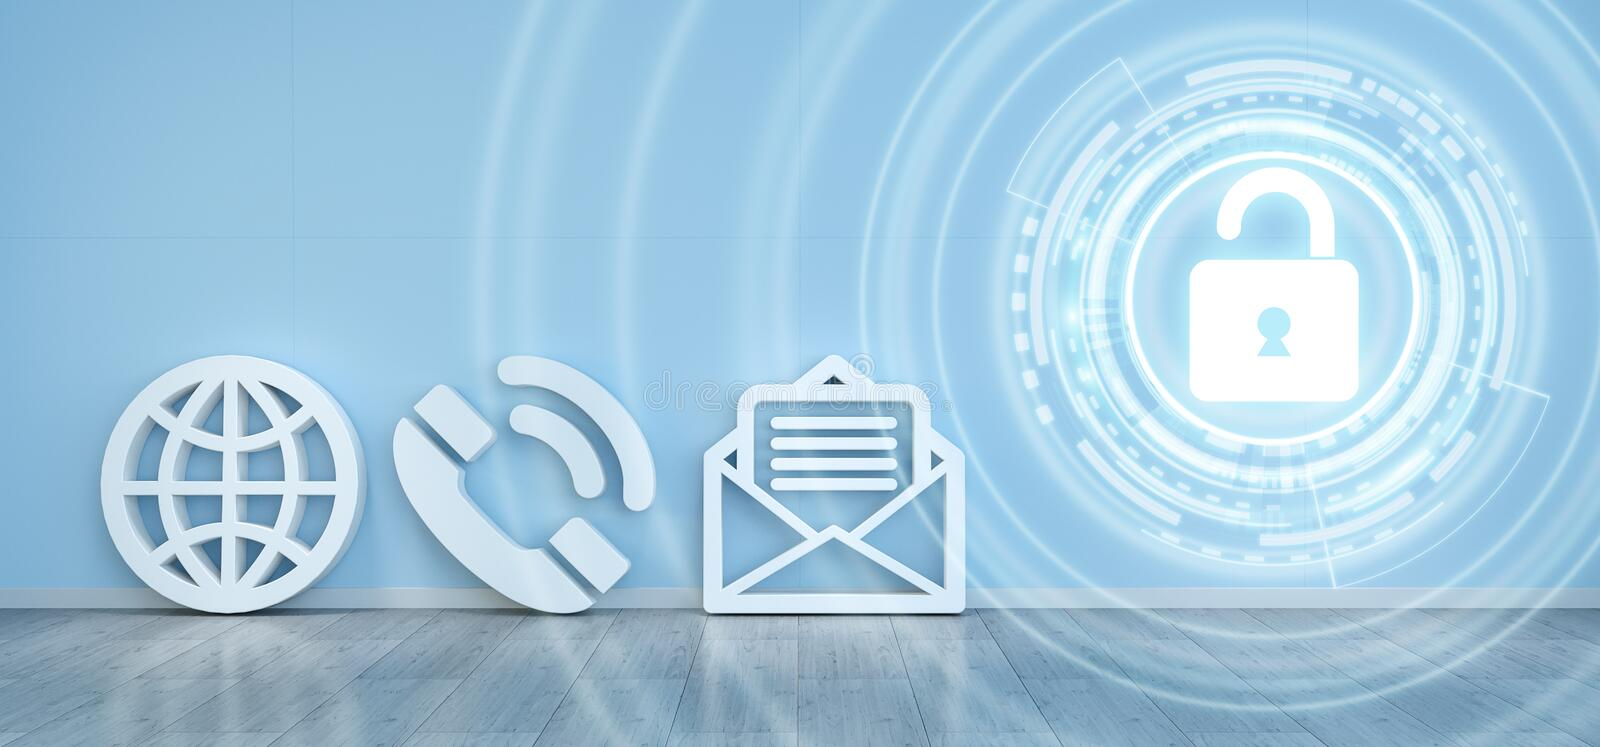 Contact icons hacking concept 3D rendering stock illustration